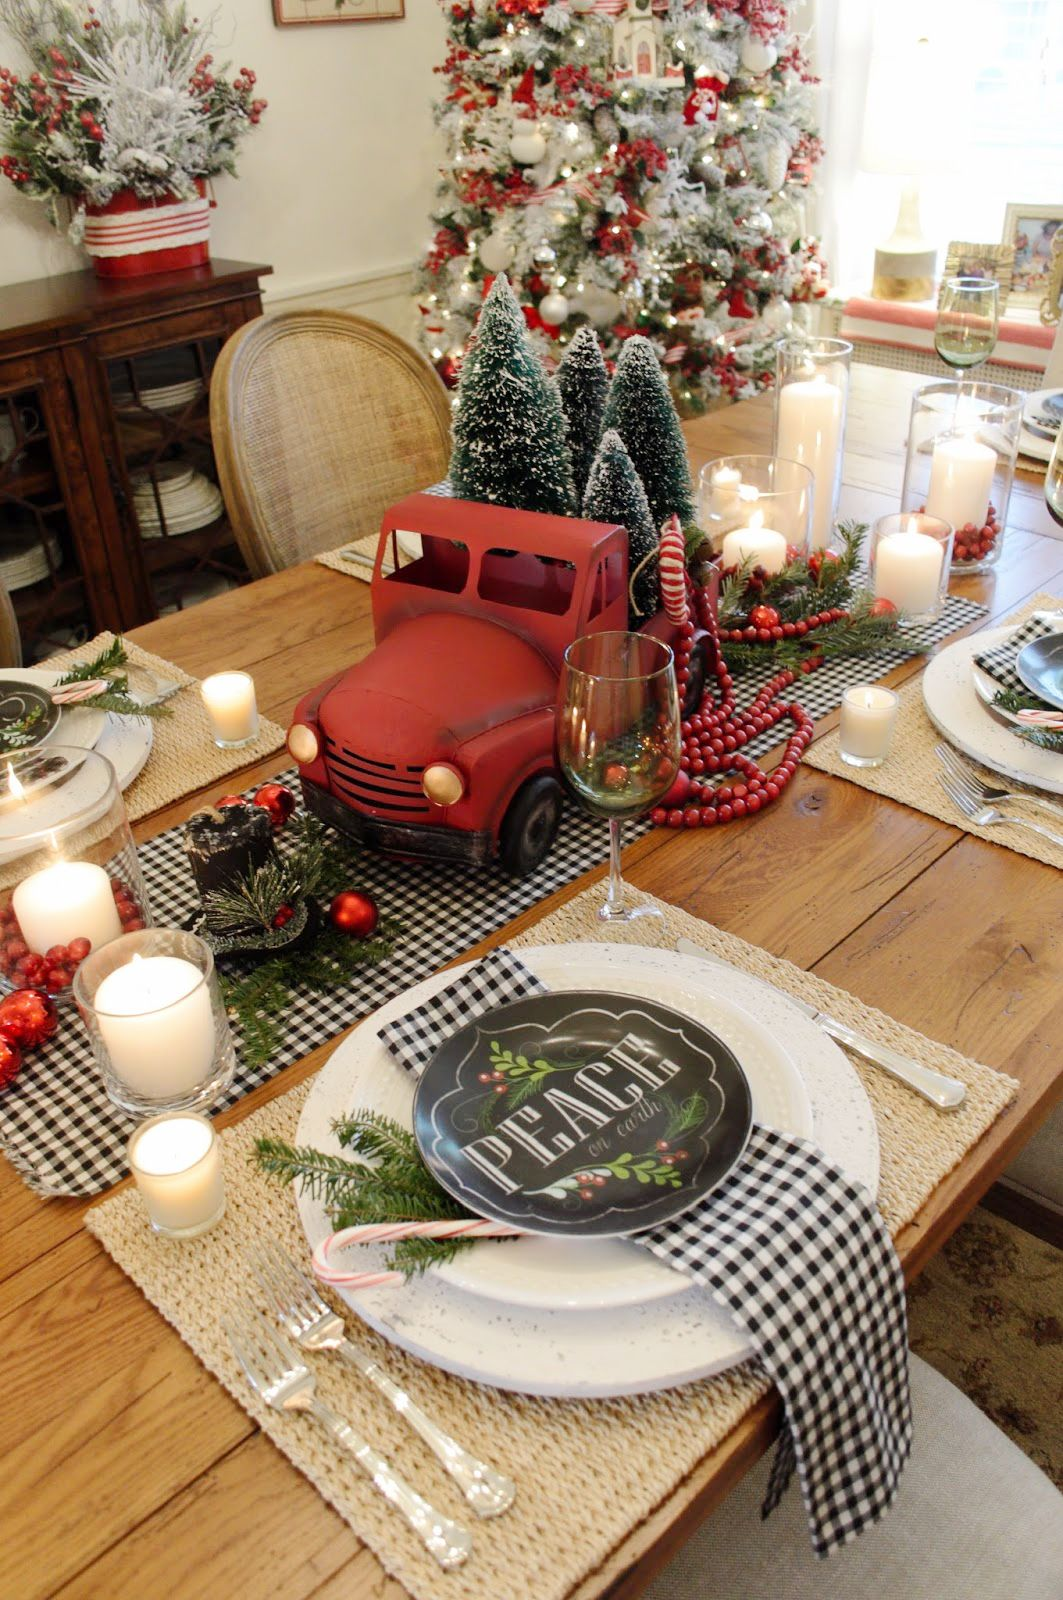 43 Best Christmas Table Settings Decorations And Centerpiece Ideas For Your